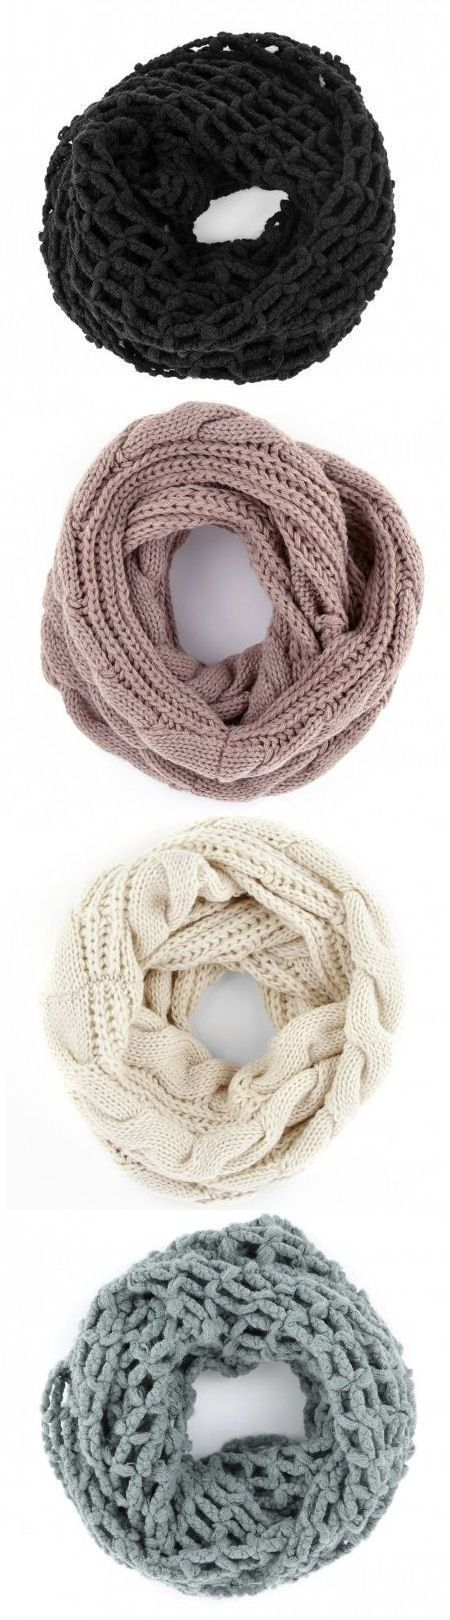 Infinity Scarves - I still don't know how to tie a scarf ...